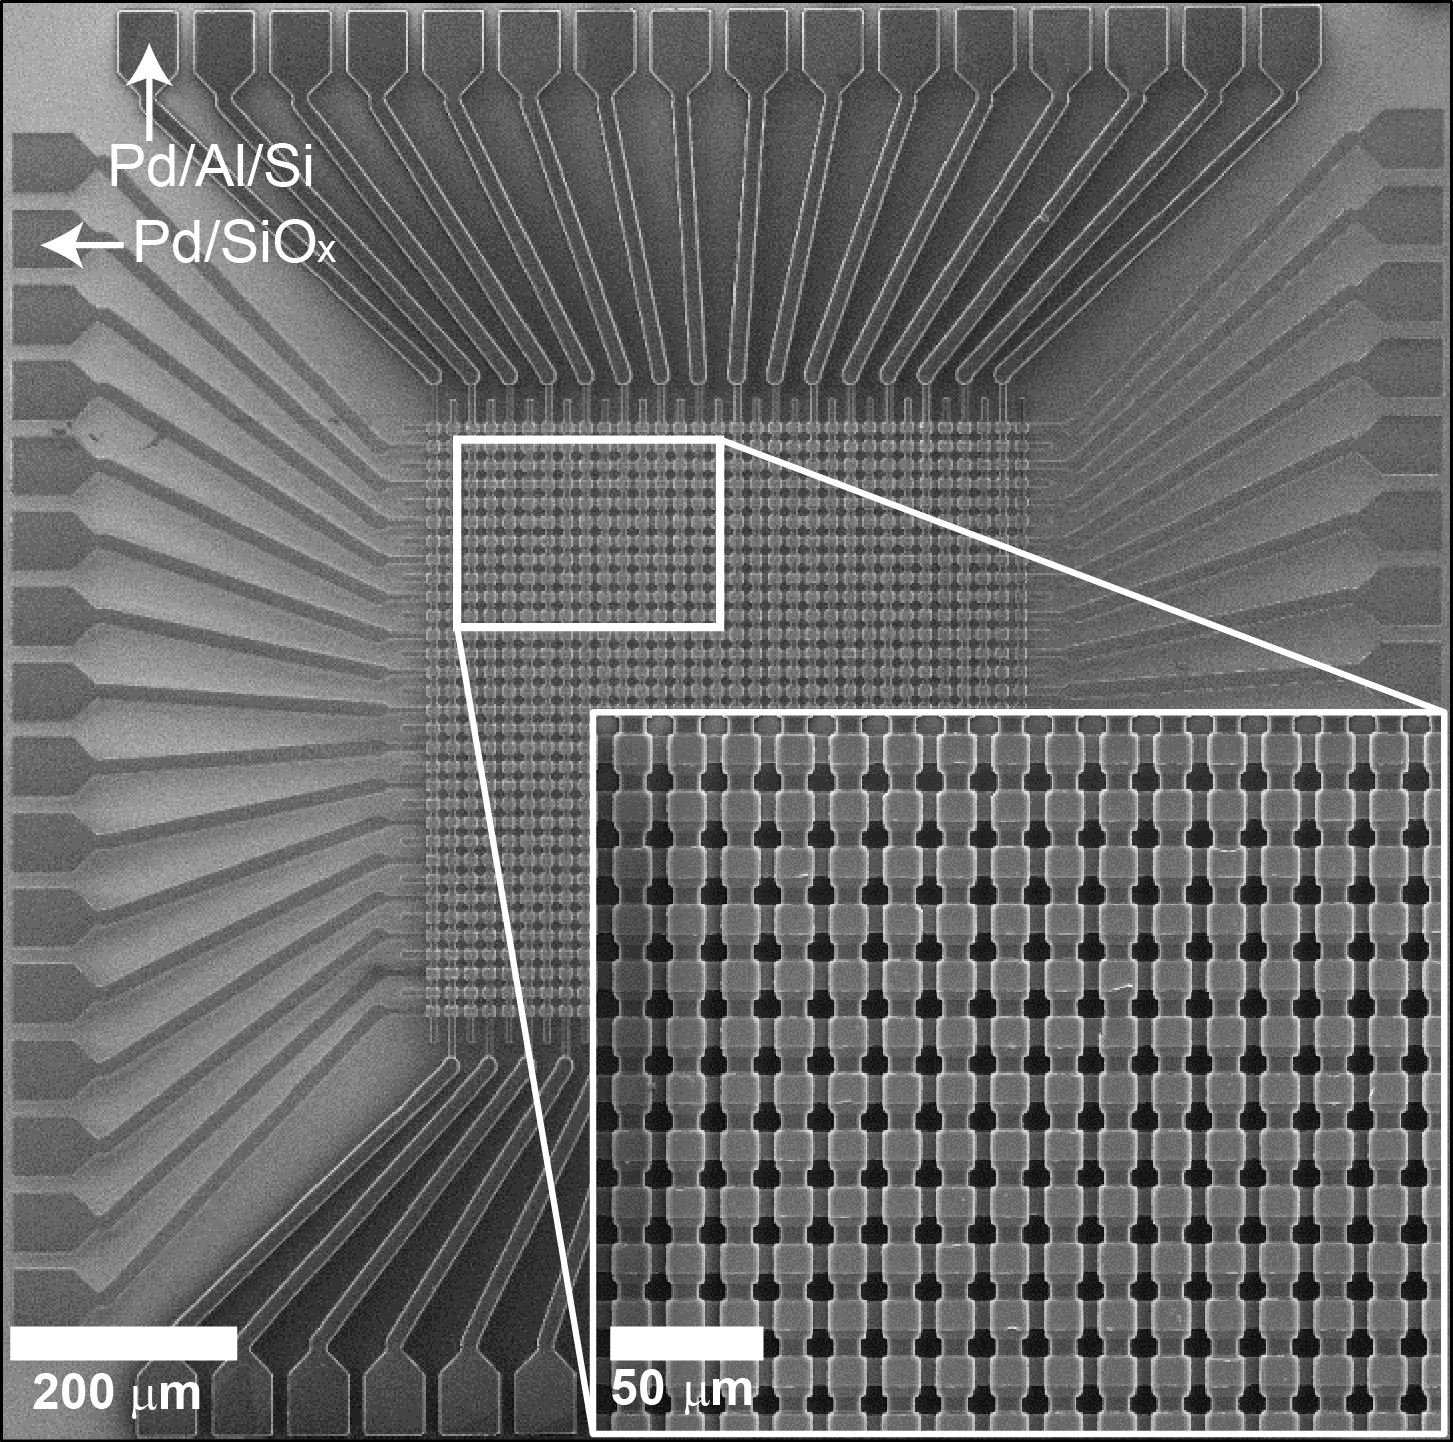 Silicon Oxide Chip Design Could Replace Flash Memory